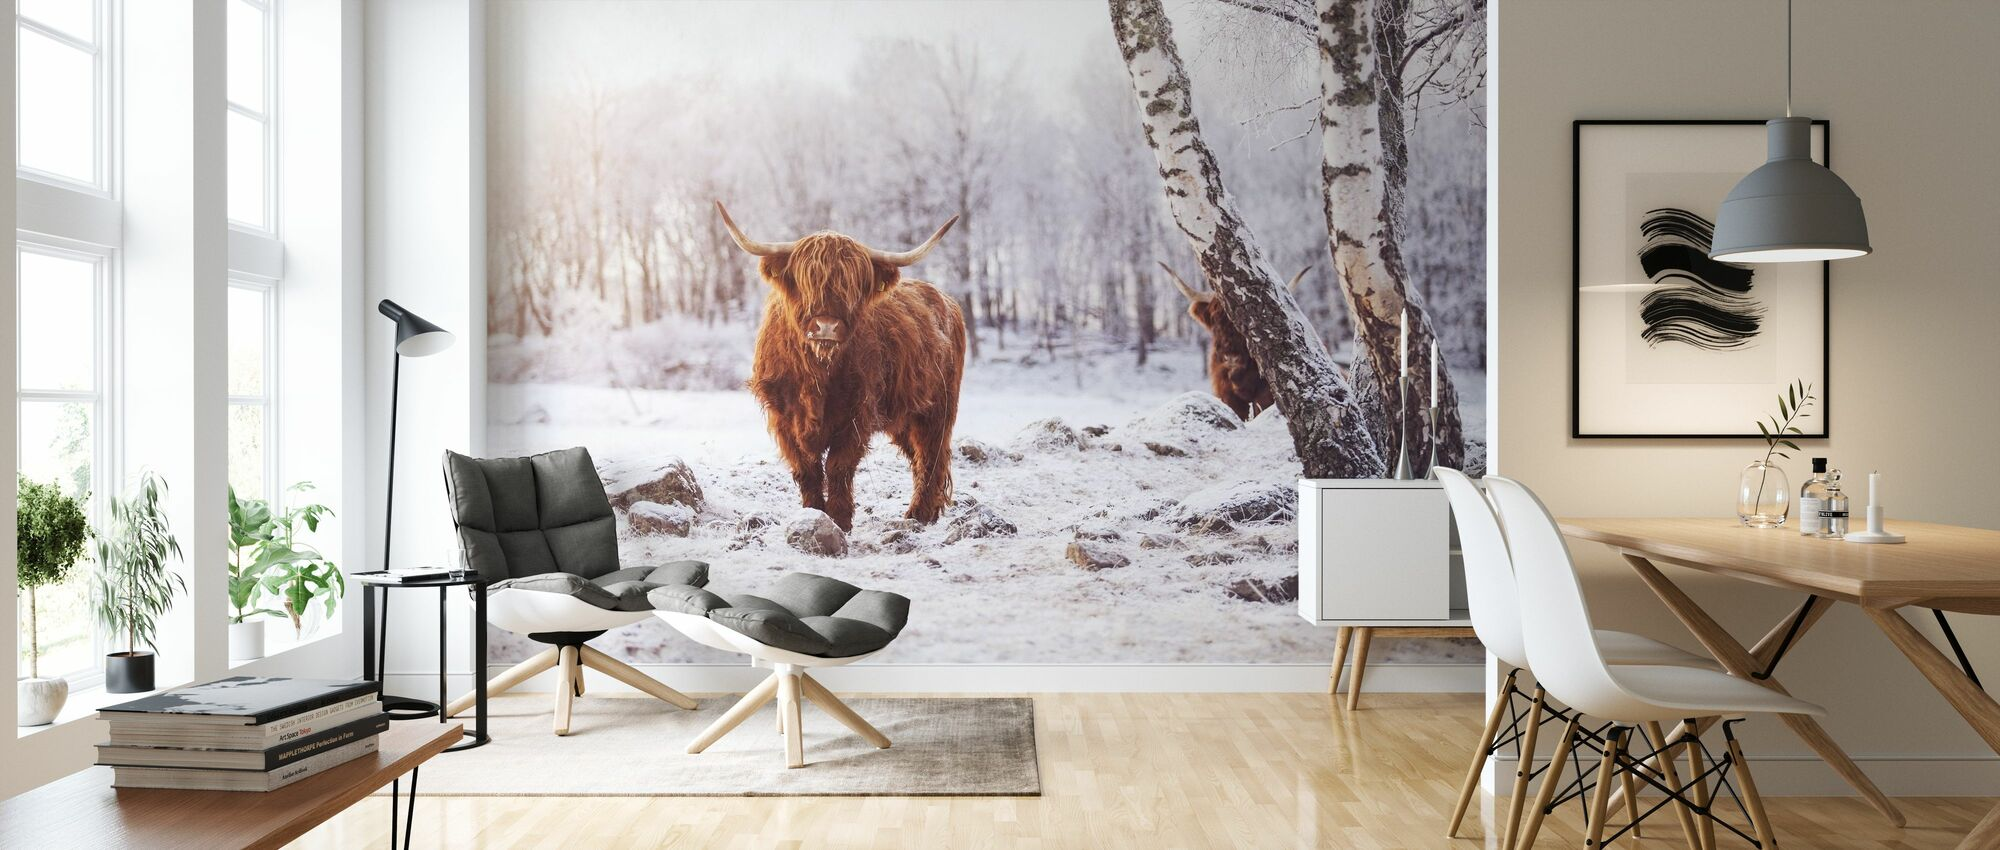 Highland Cattle - Wallpaper - Living Room